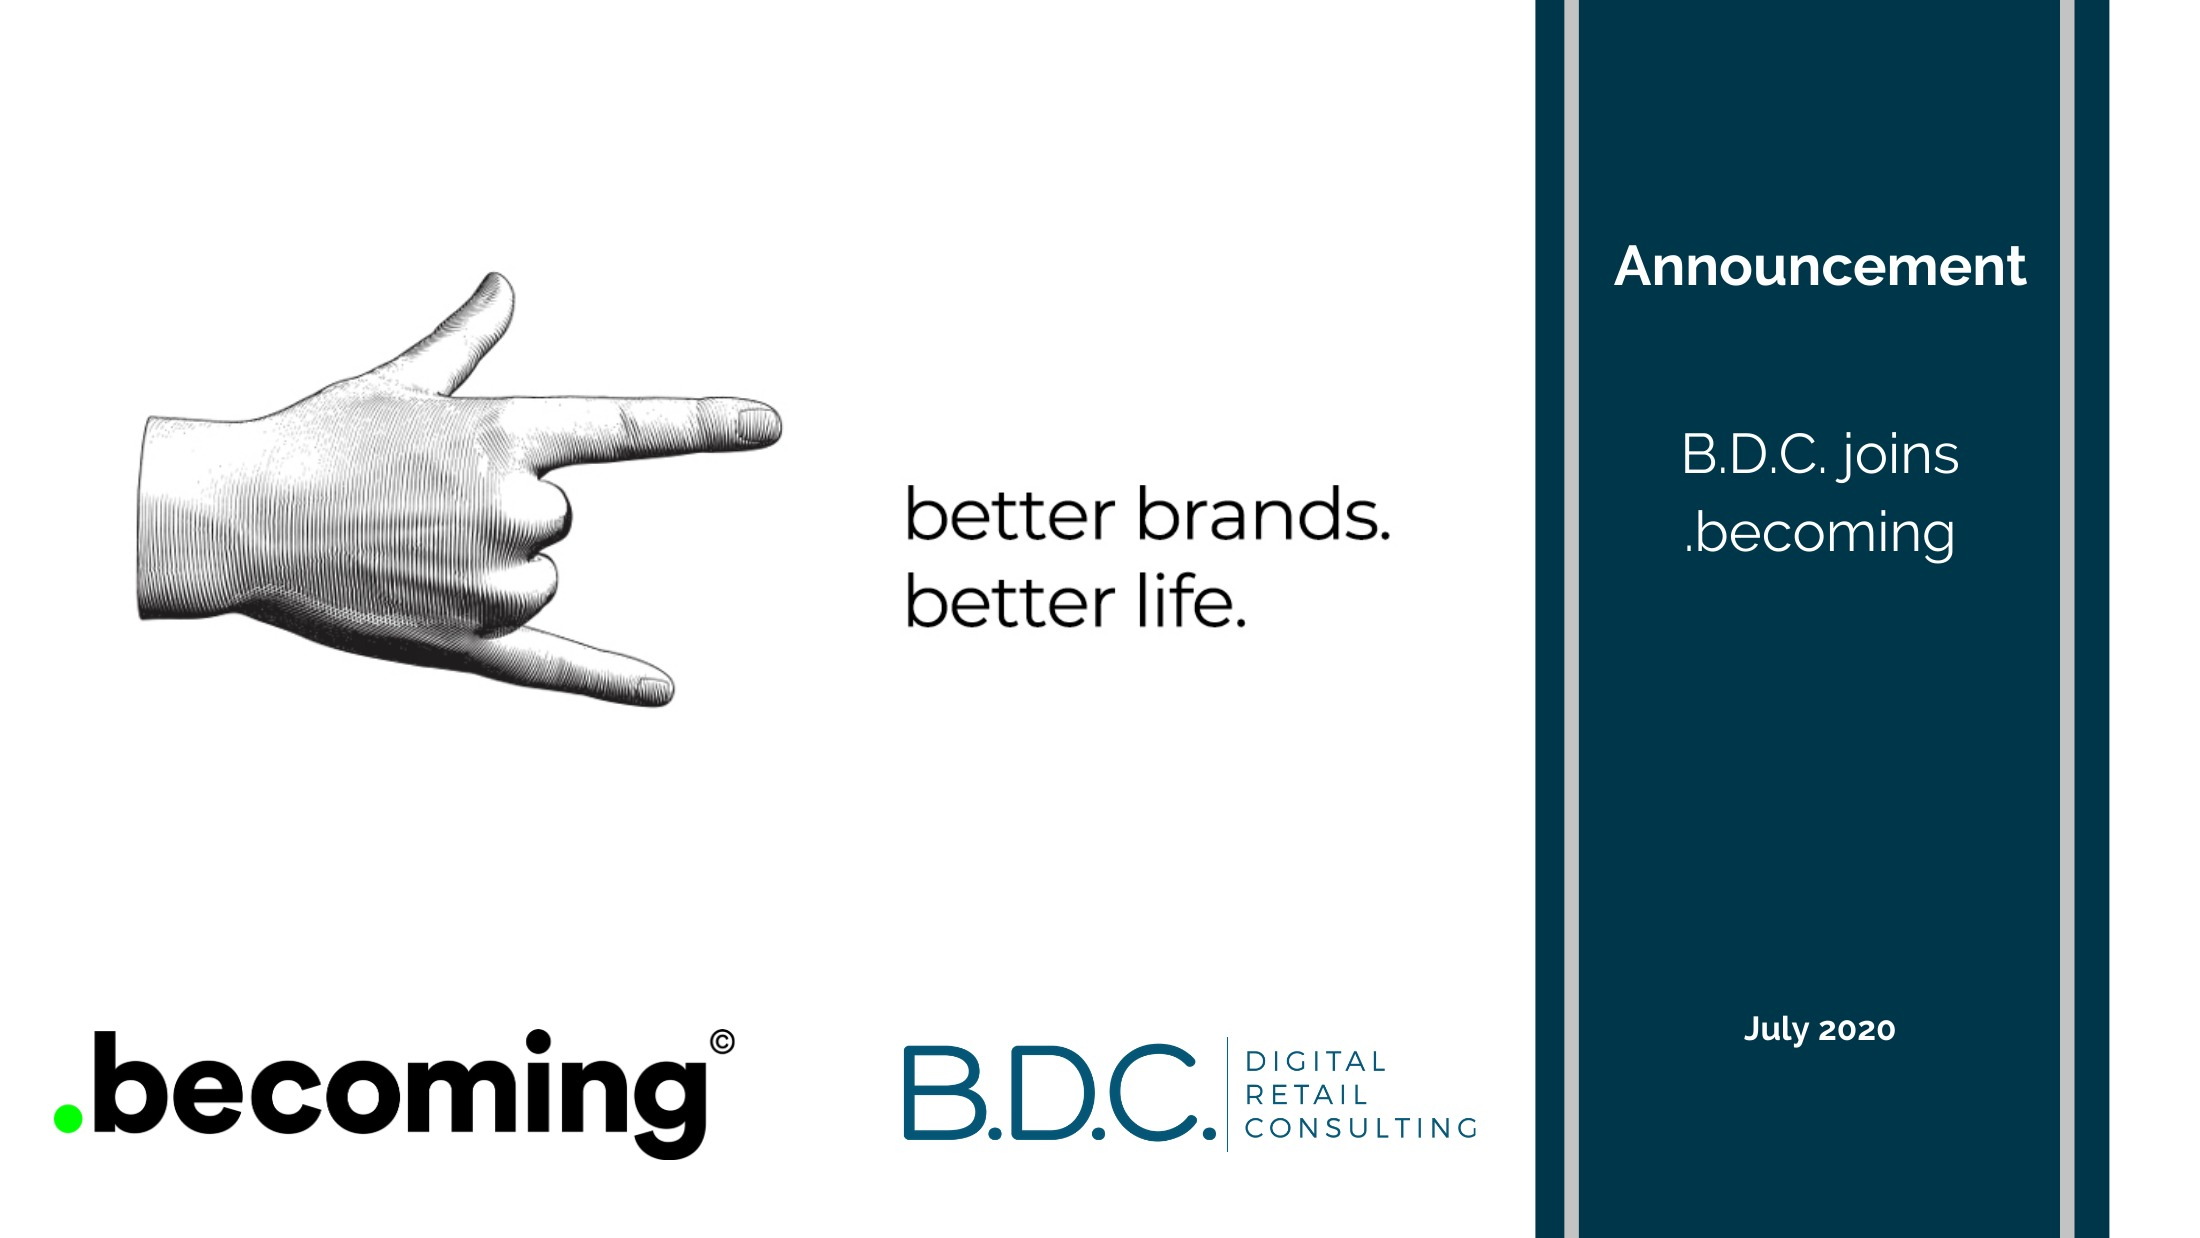 Expérience client 21 - B.D.C. joins .becoming!